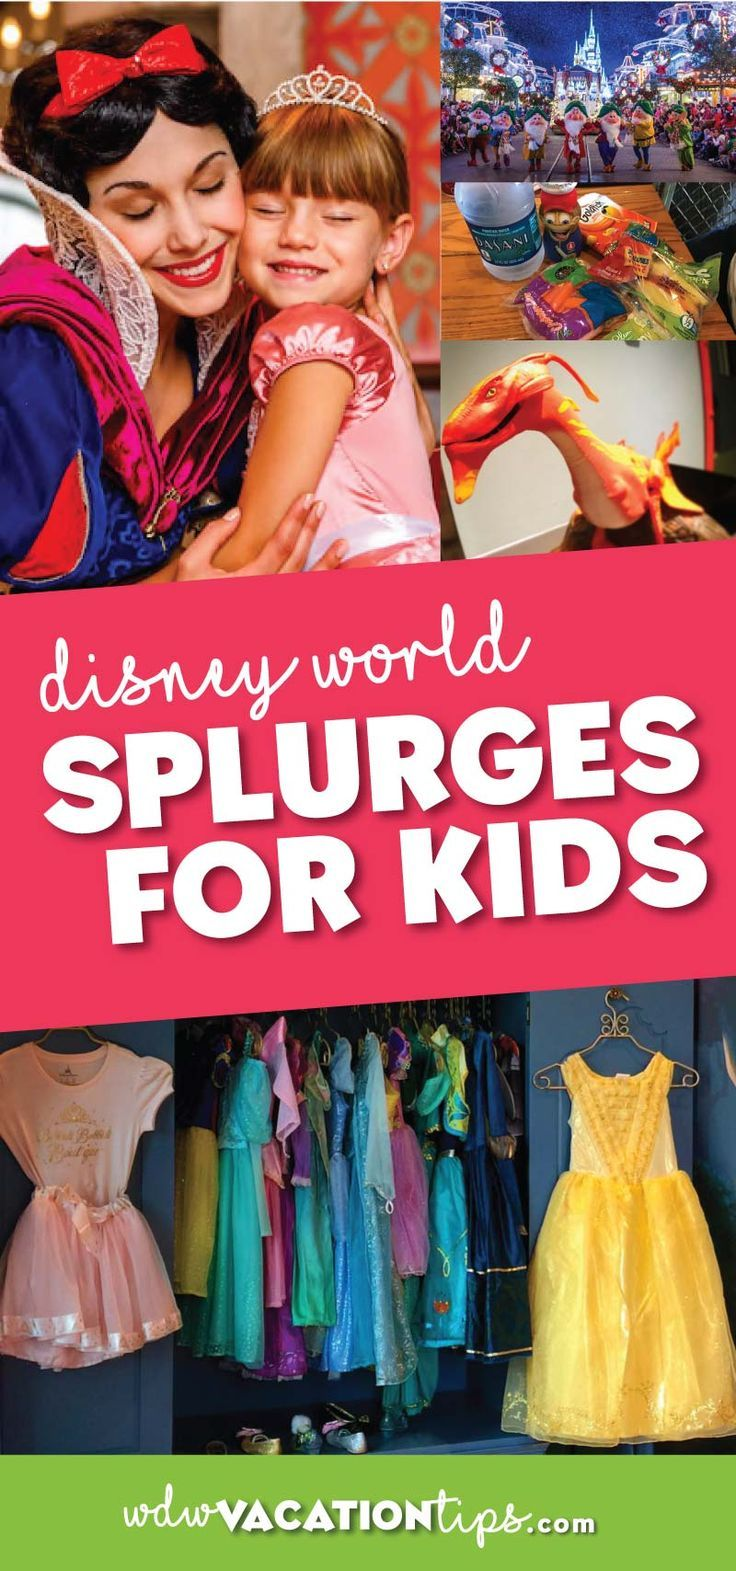 A Disney World vacation in and of itself is a splurge for your kids. We are going to share with you some special Disney World splurges for kids.